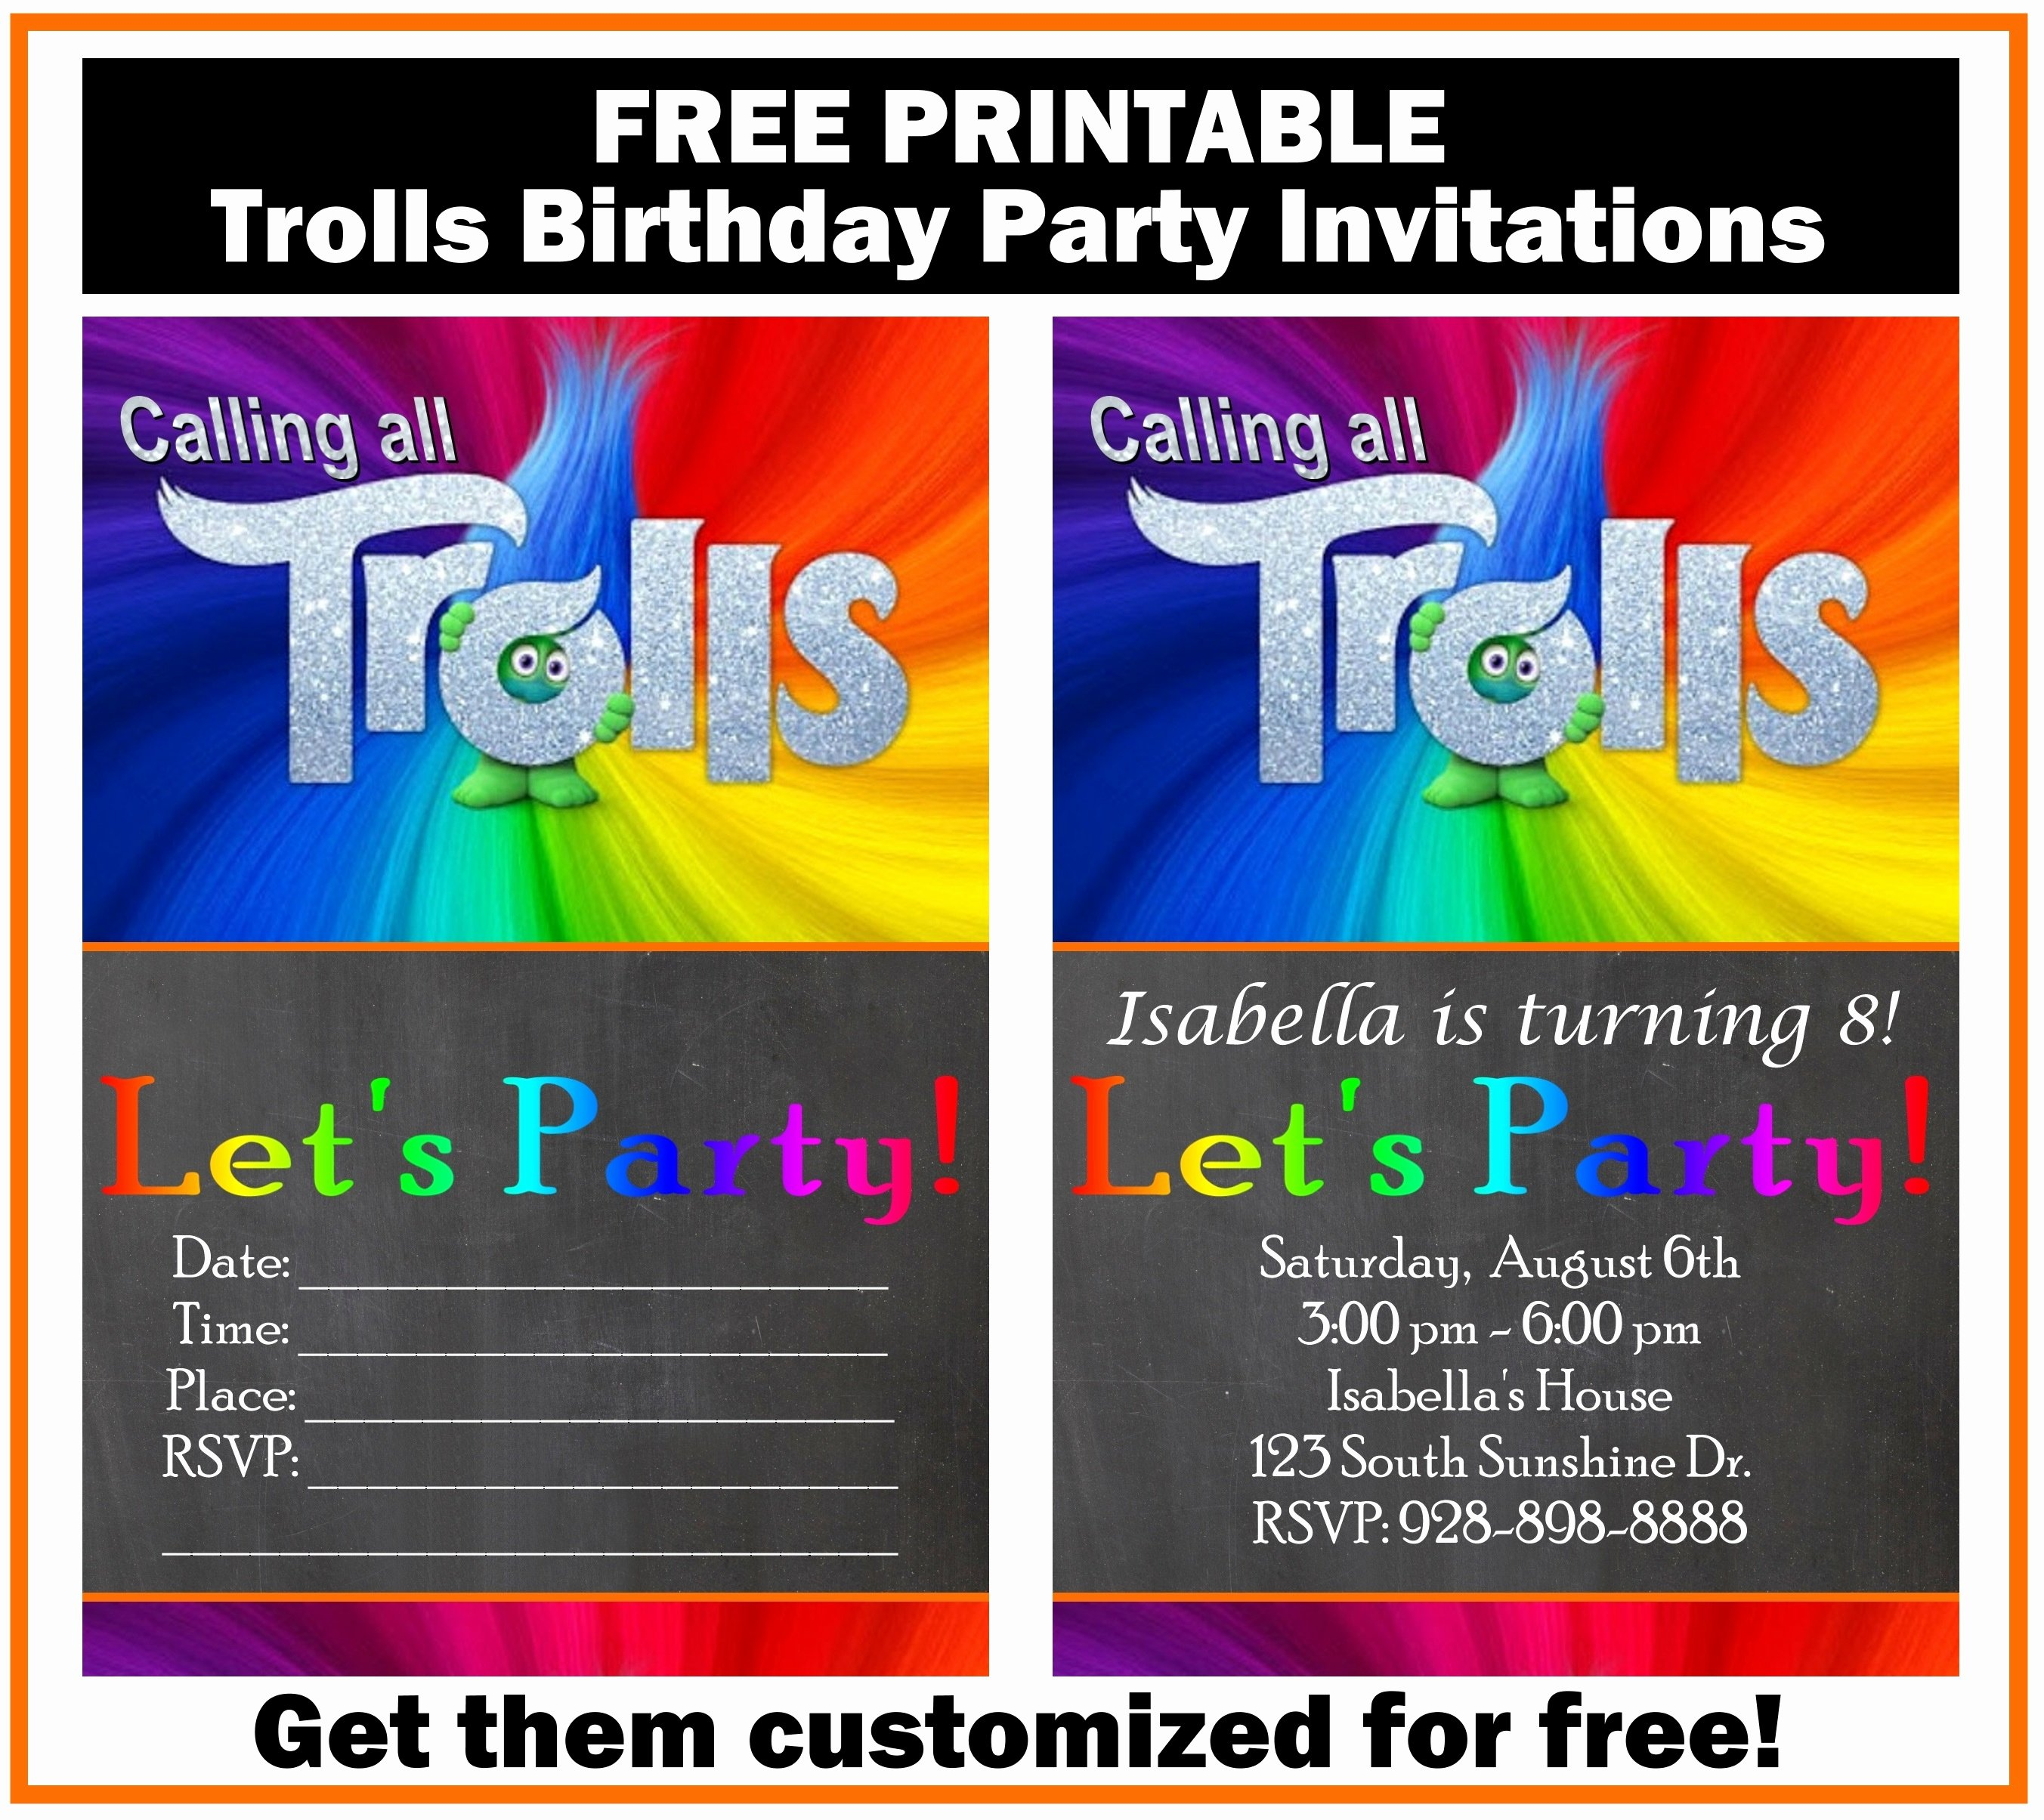 Free Printable Anniversary Invitations Fresh Free Trolls Birthday Party Invitation Printables Printables 4 Mom